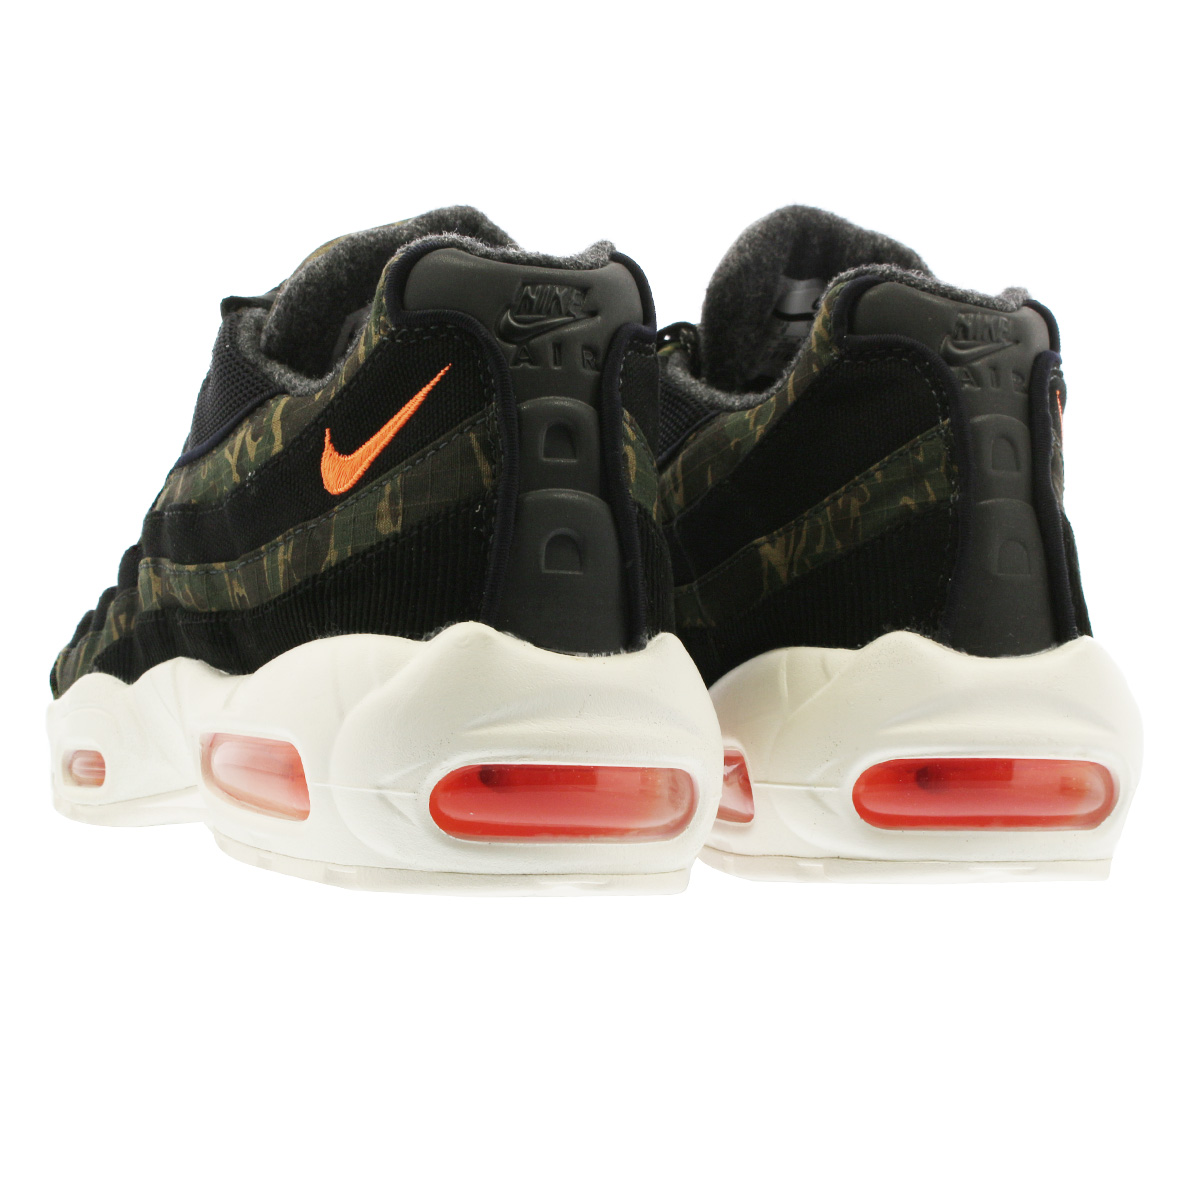 NIKE AIR MAX 95 CARHARTT WIP Kie Ney AMAX 95 car heart BLACK TOTAL  ORANGE SAIL av3866-001 35edfdc84